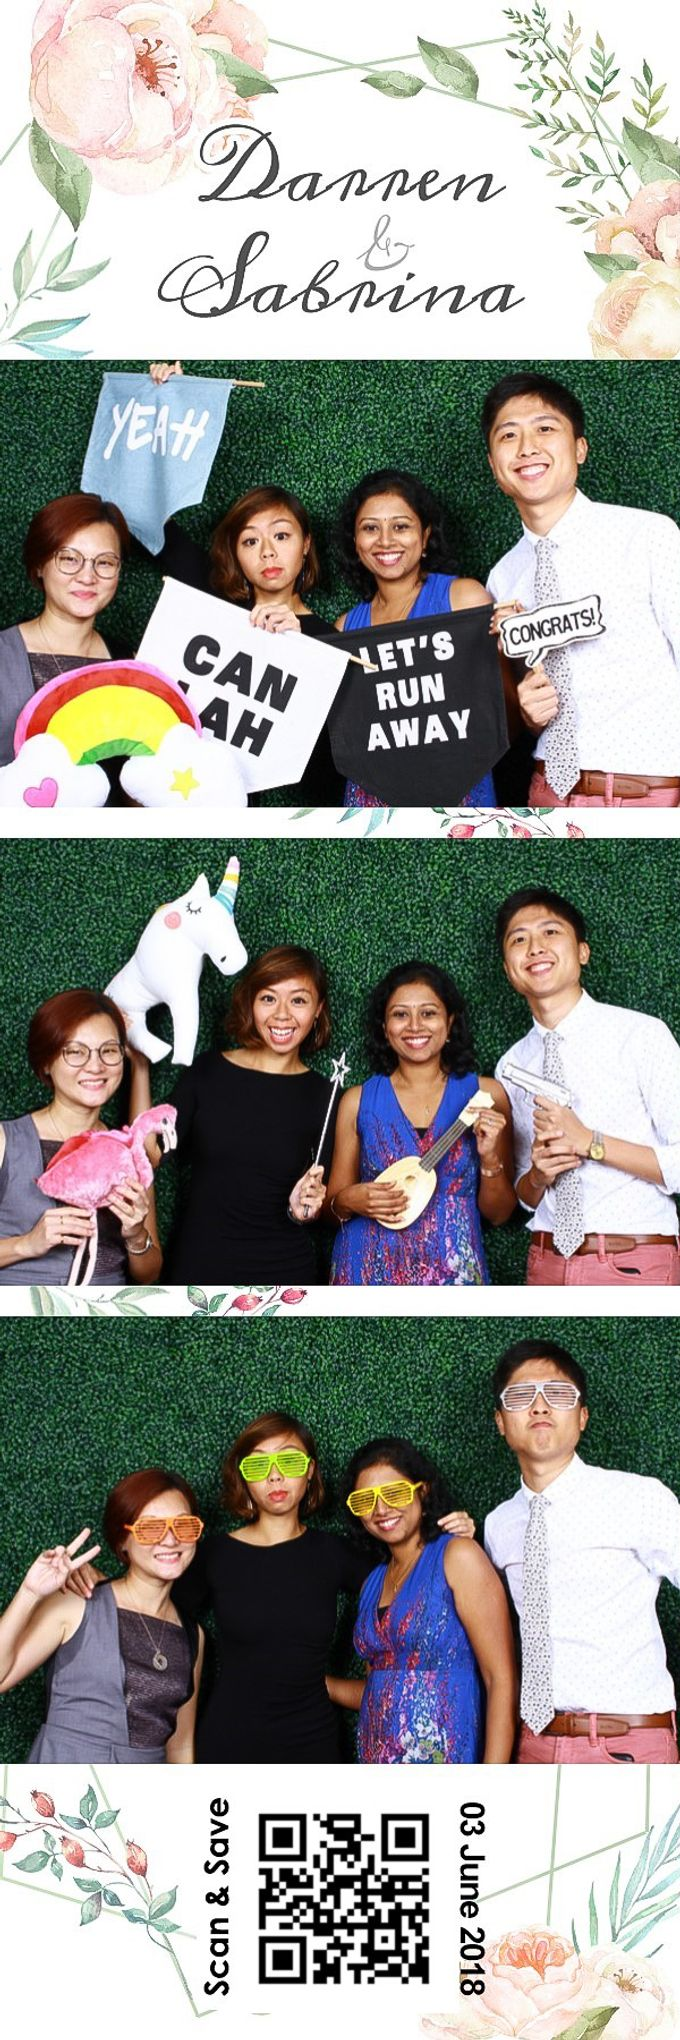 Darren & Sabrina Wedding Photo Booth by Cloud Booth - 003